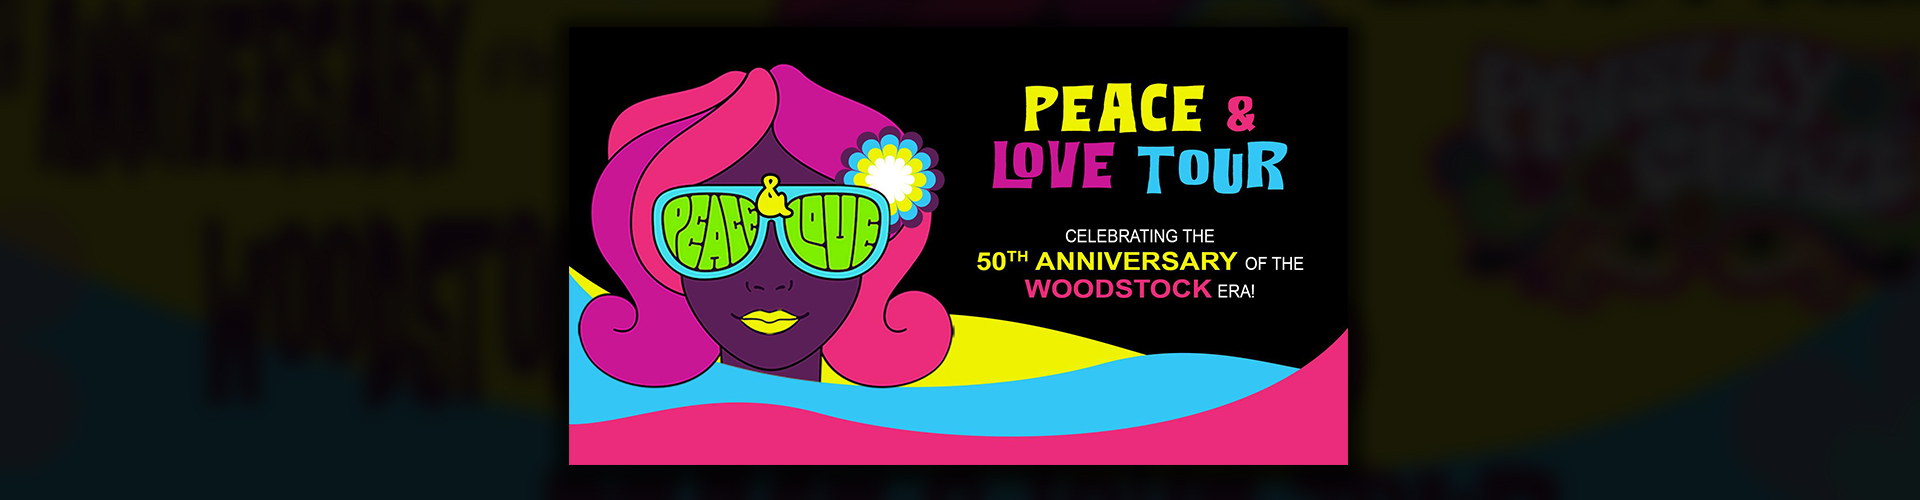 Peace and Love Tour 2019